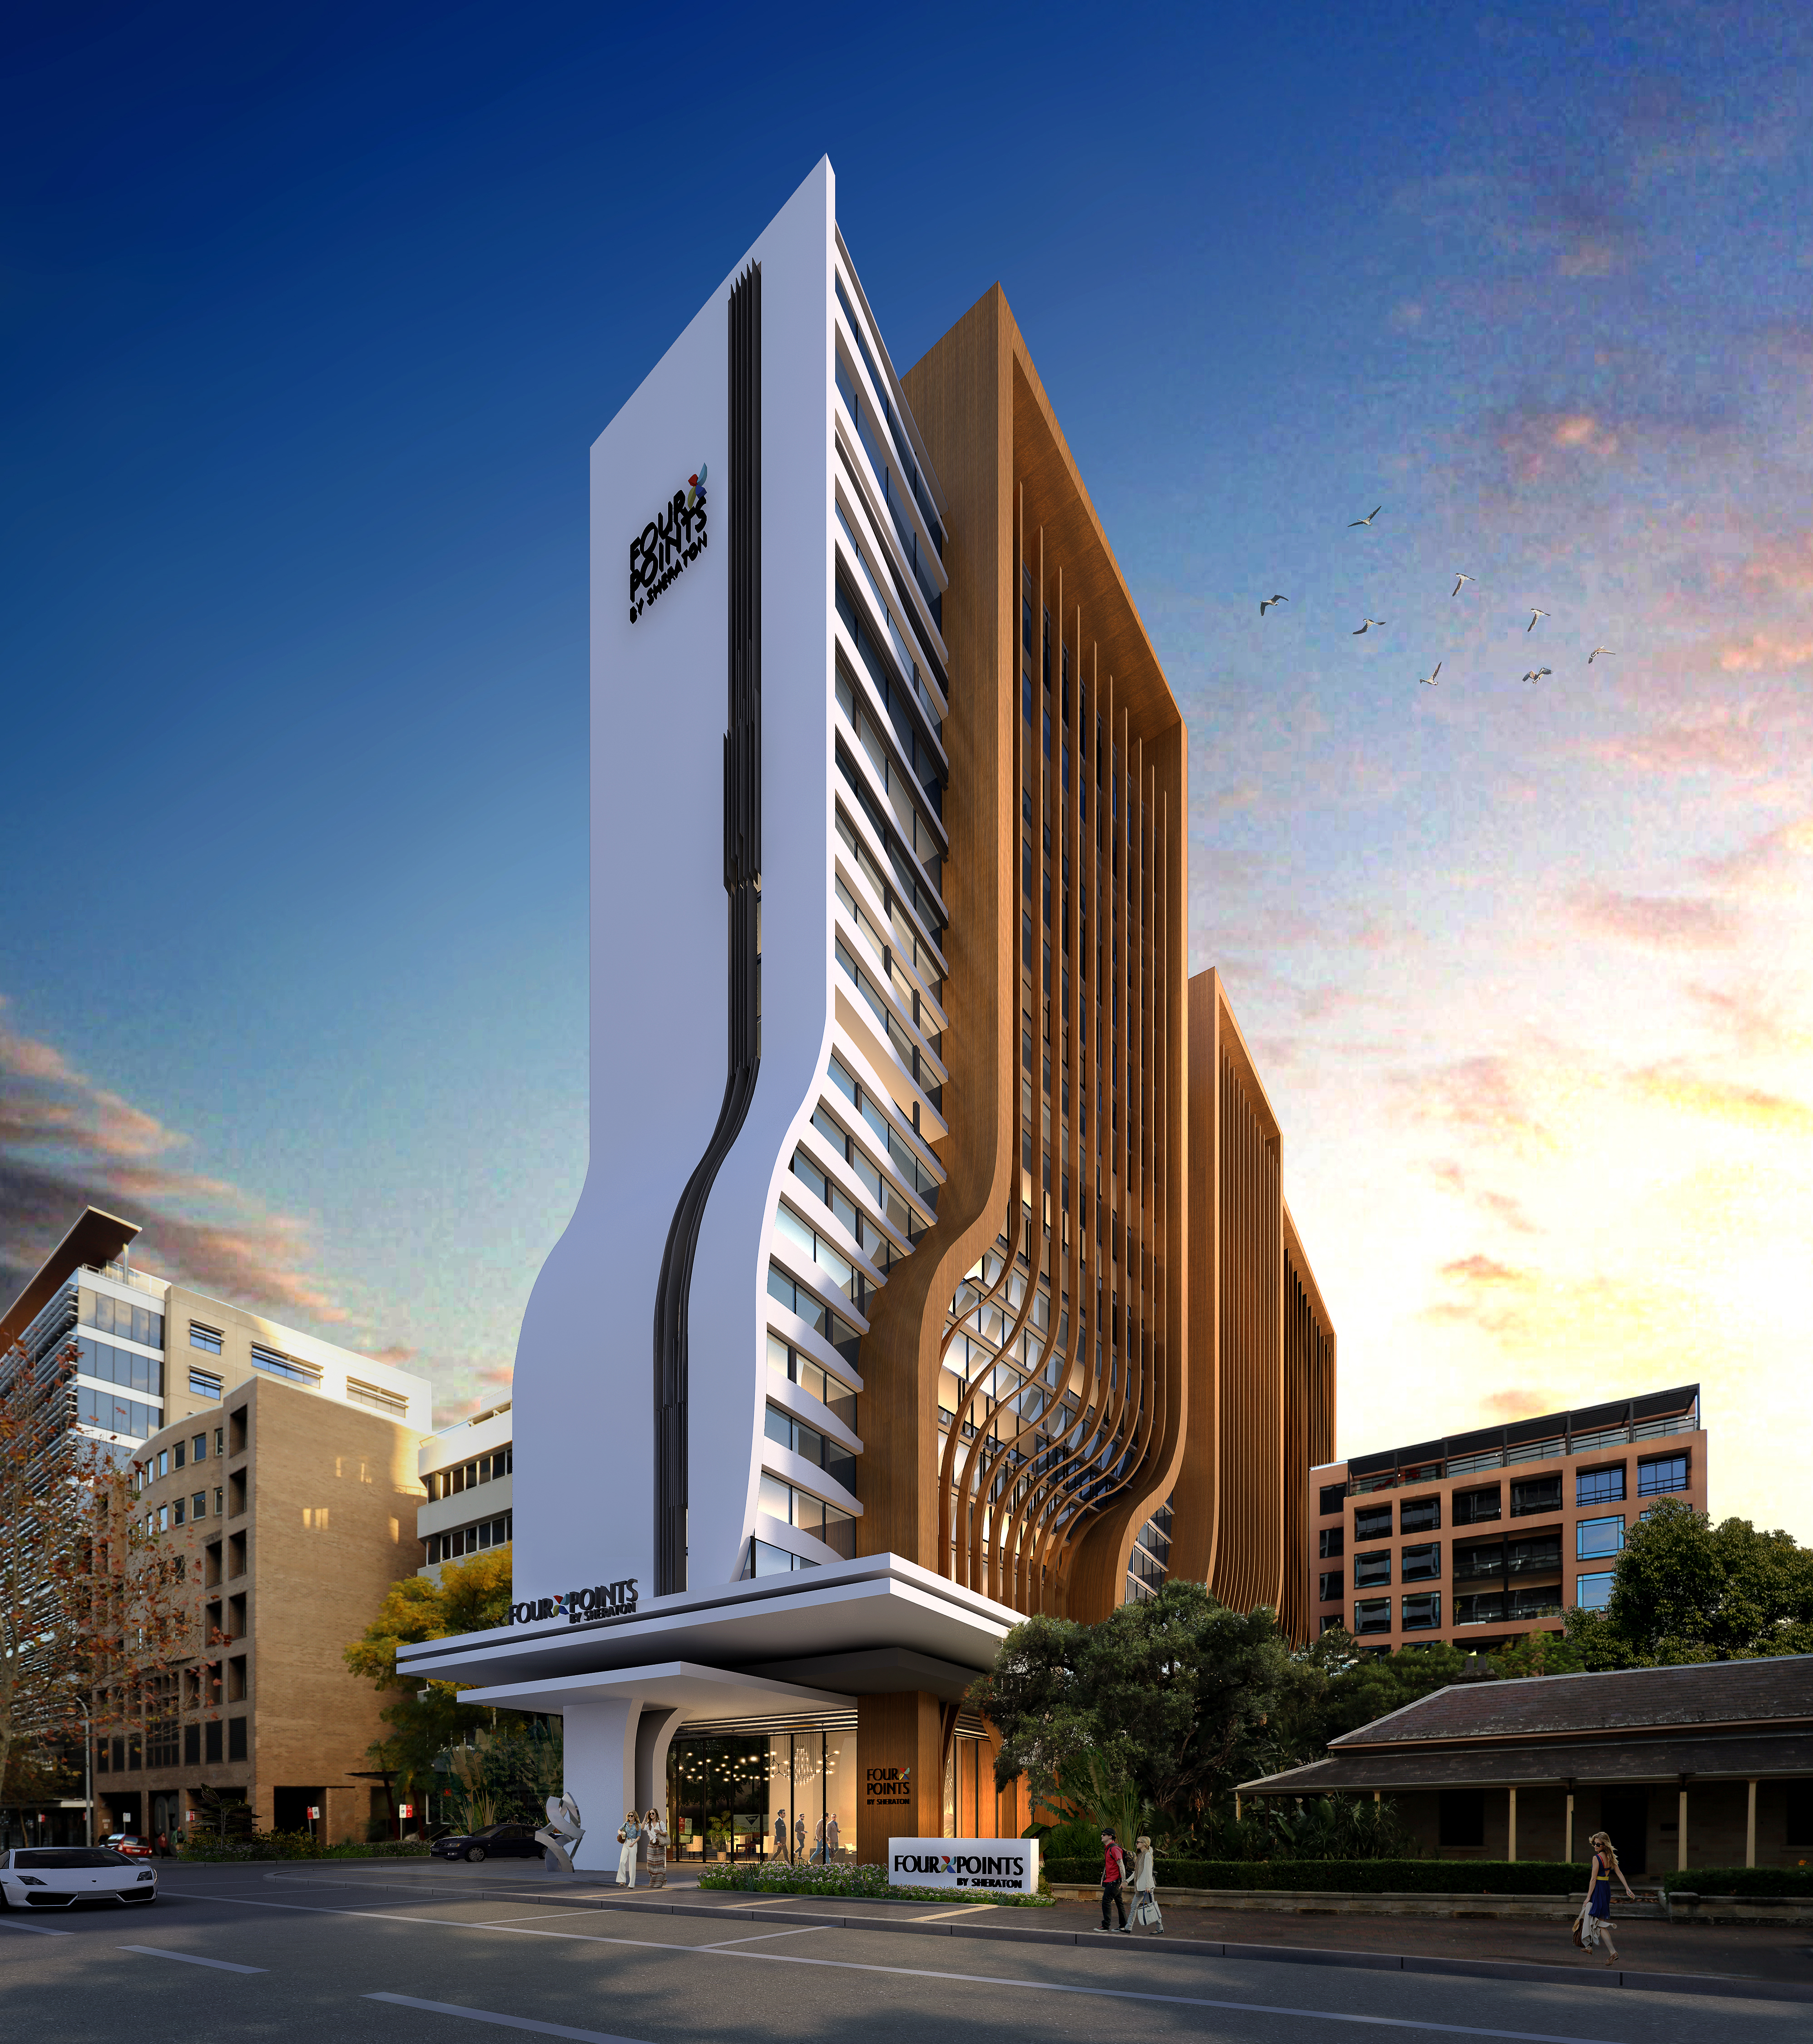 Starwood Hotels Resorts Expands Presence In Australia With The Signing Of Four Points By Sheraton Parramatta